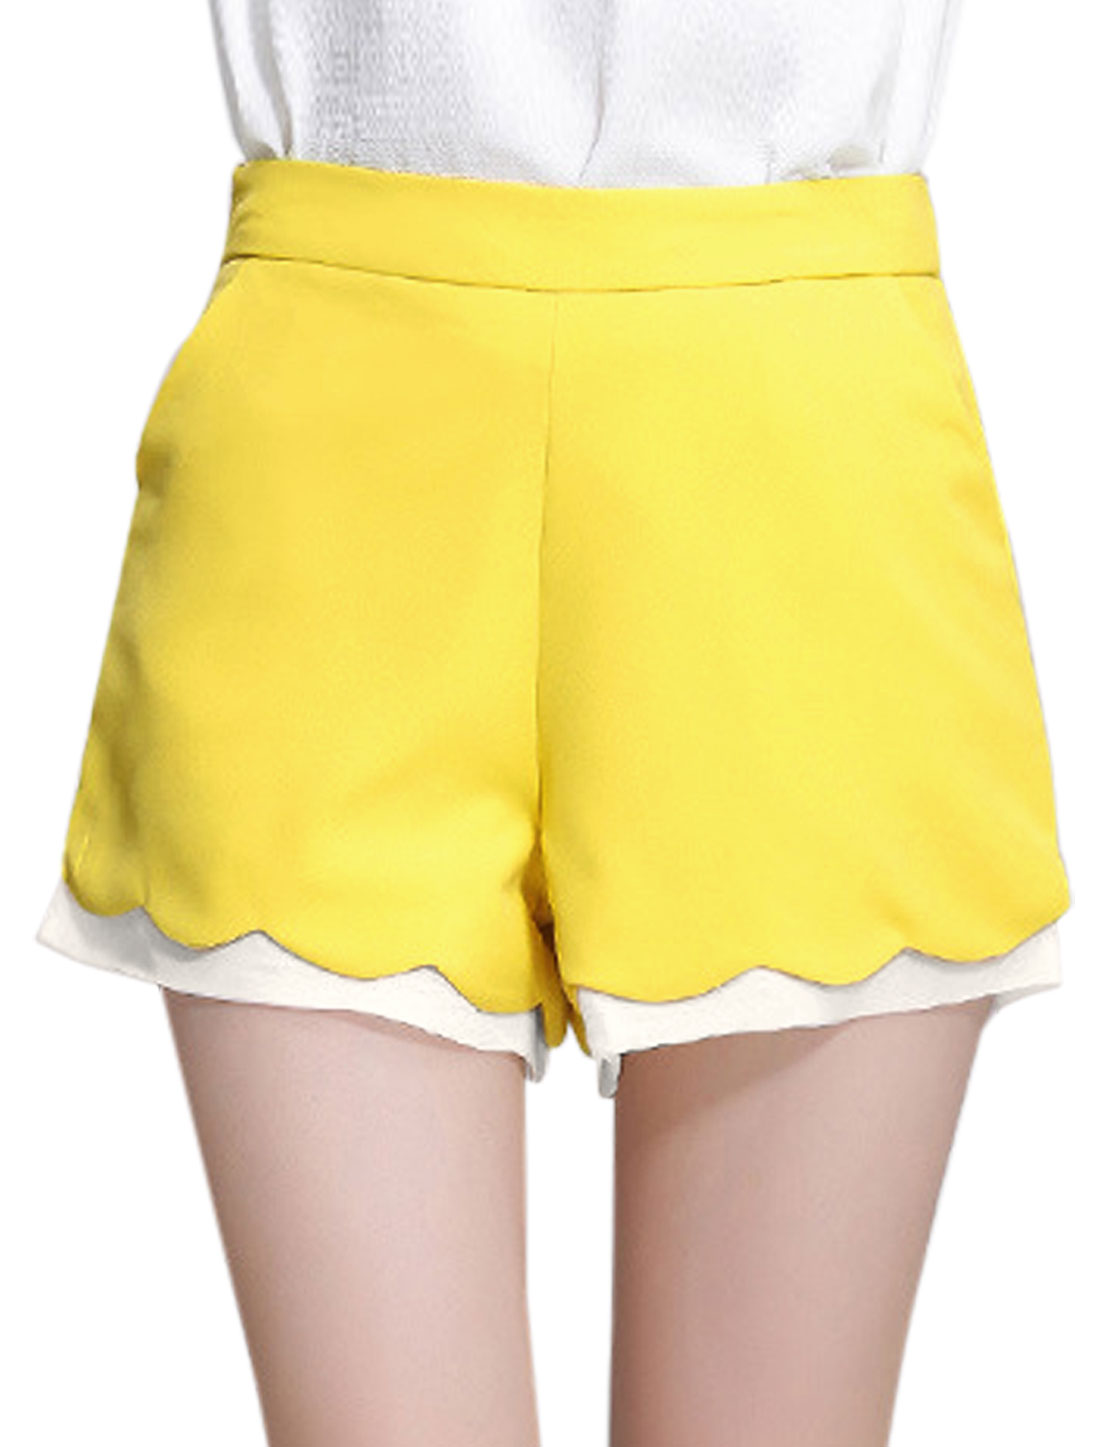 Lady Scalloped Trim Two Side Pockets Casual Shorts Light Yellow L